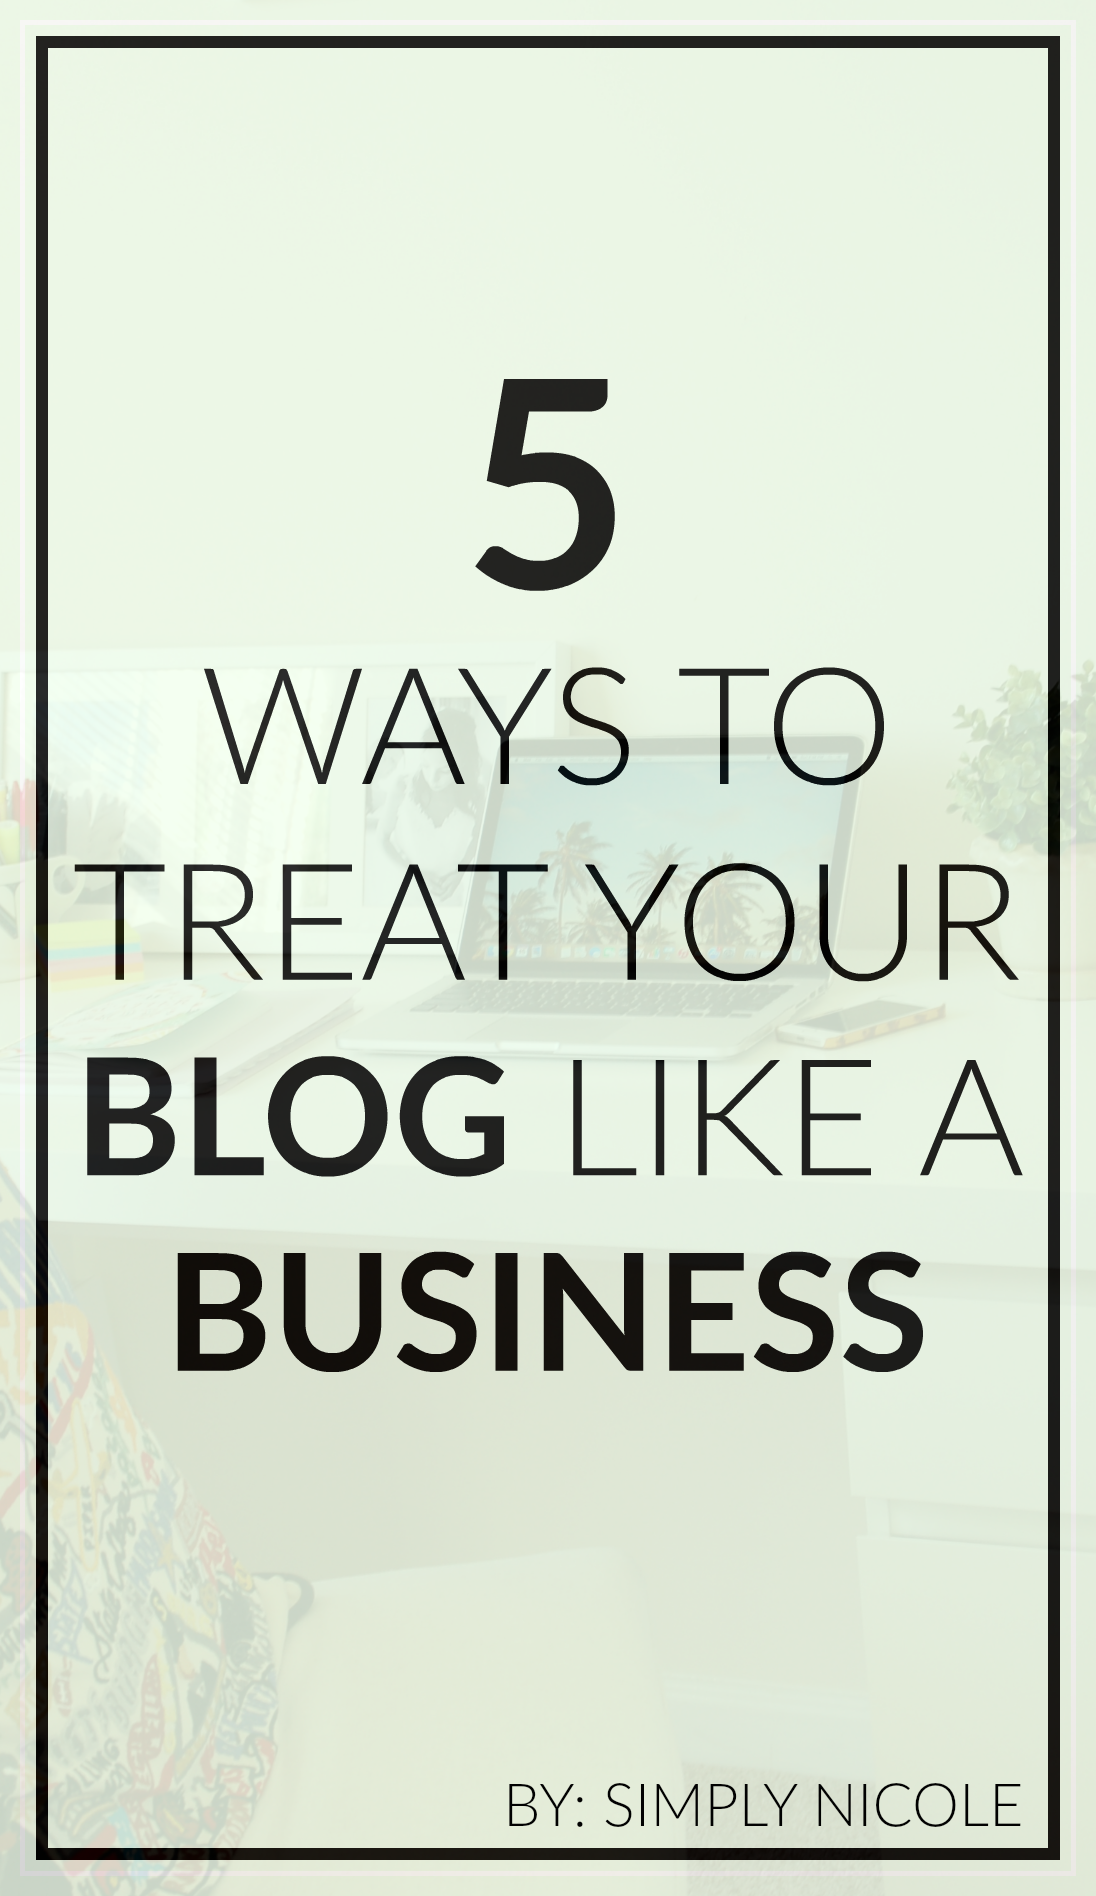 5 Ways to Treat Your Blog Like a Business